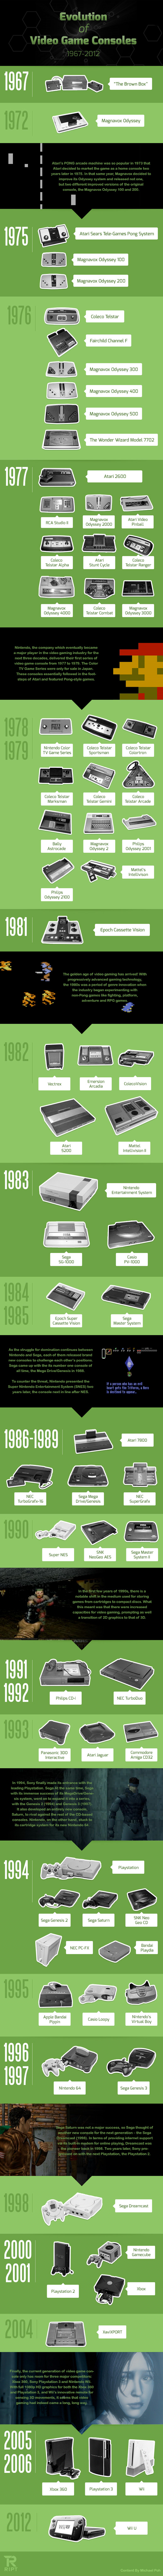 [Immagine: evolution-video-game-consoles1.jpg]